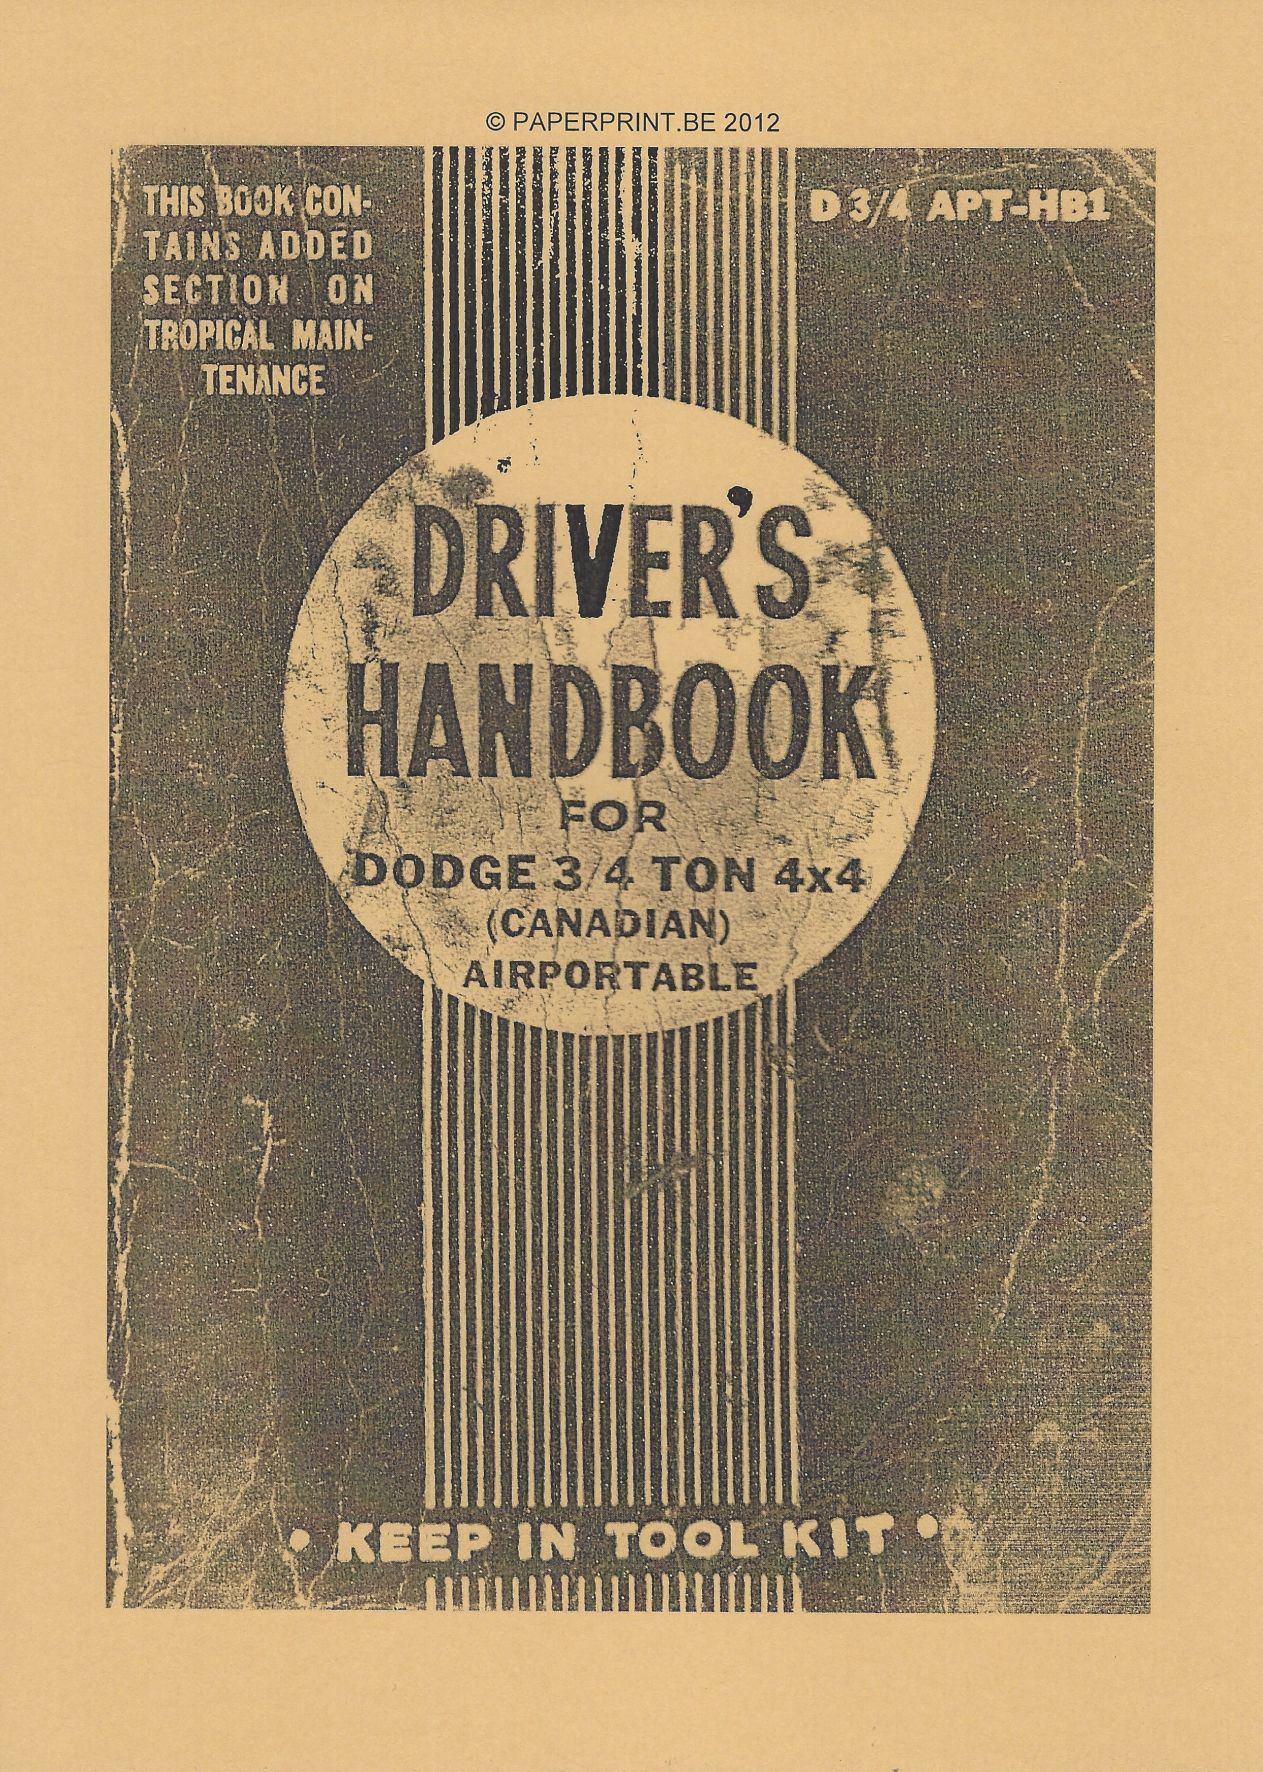 CANADIAN DODGE ¾ TON 4x4 AIRPORTABLE DRIVER'S HANDBOOK